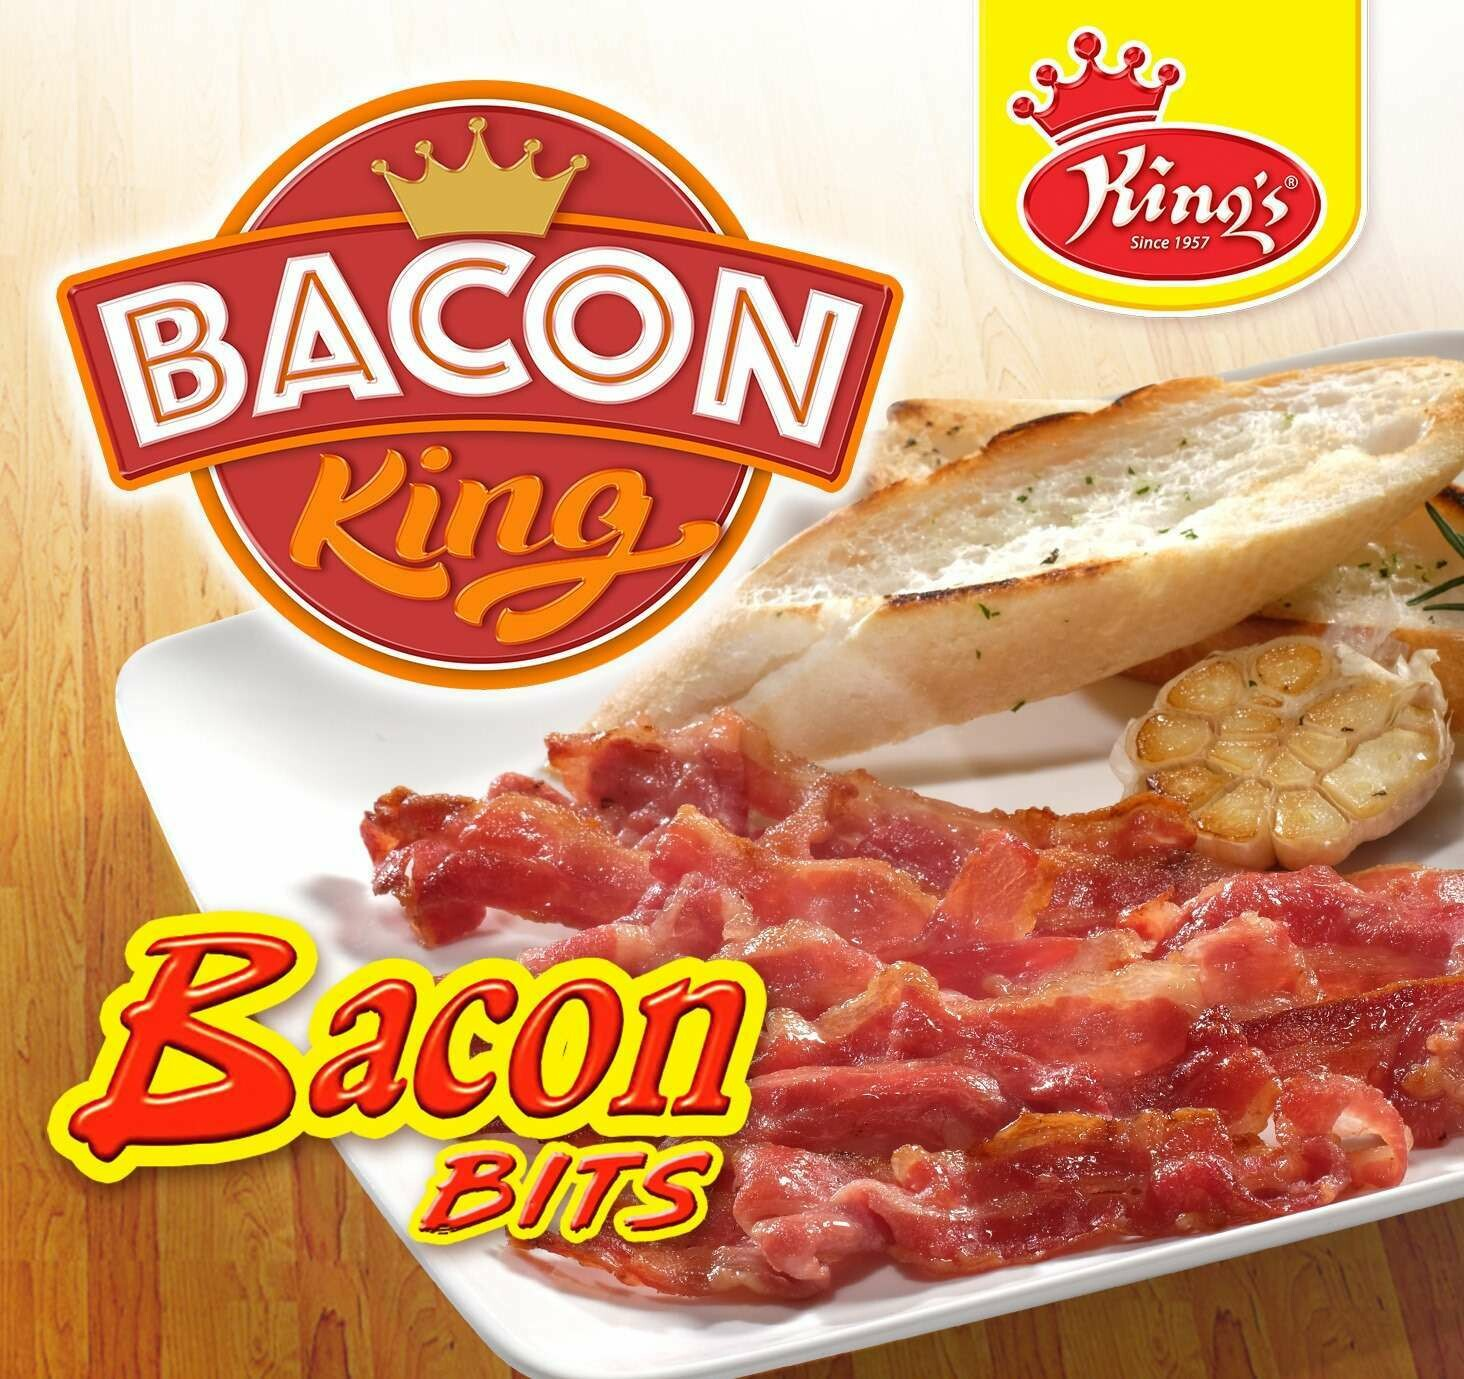 King's Bacon Bits (200g)